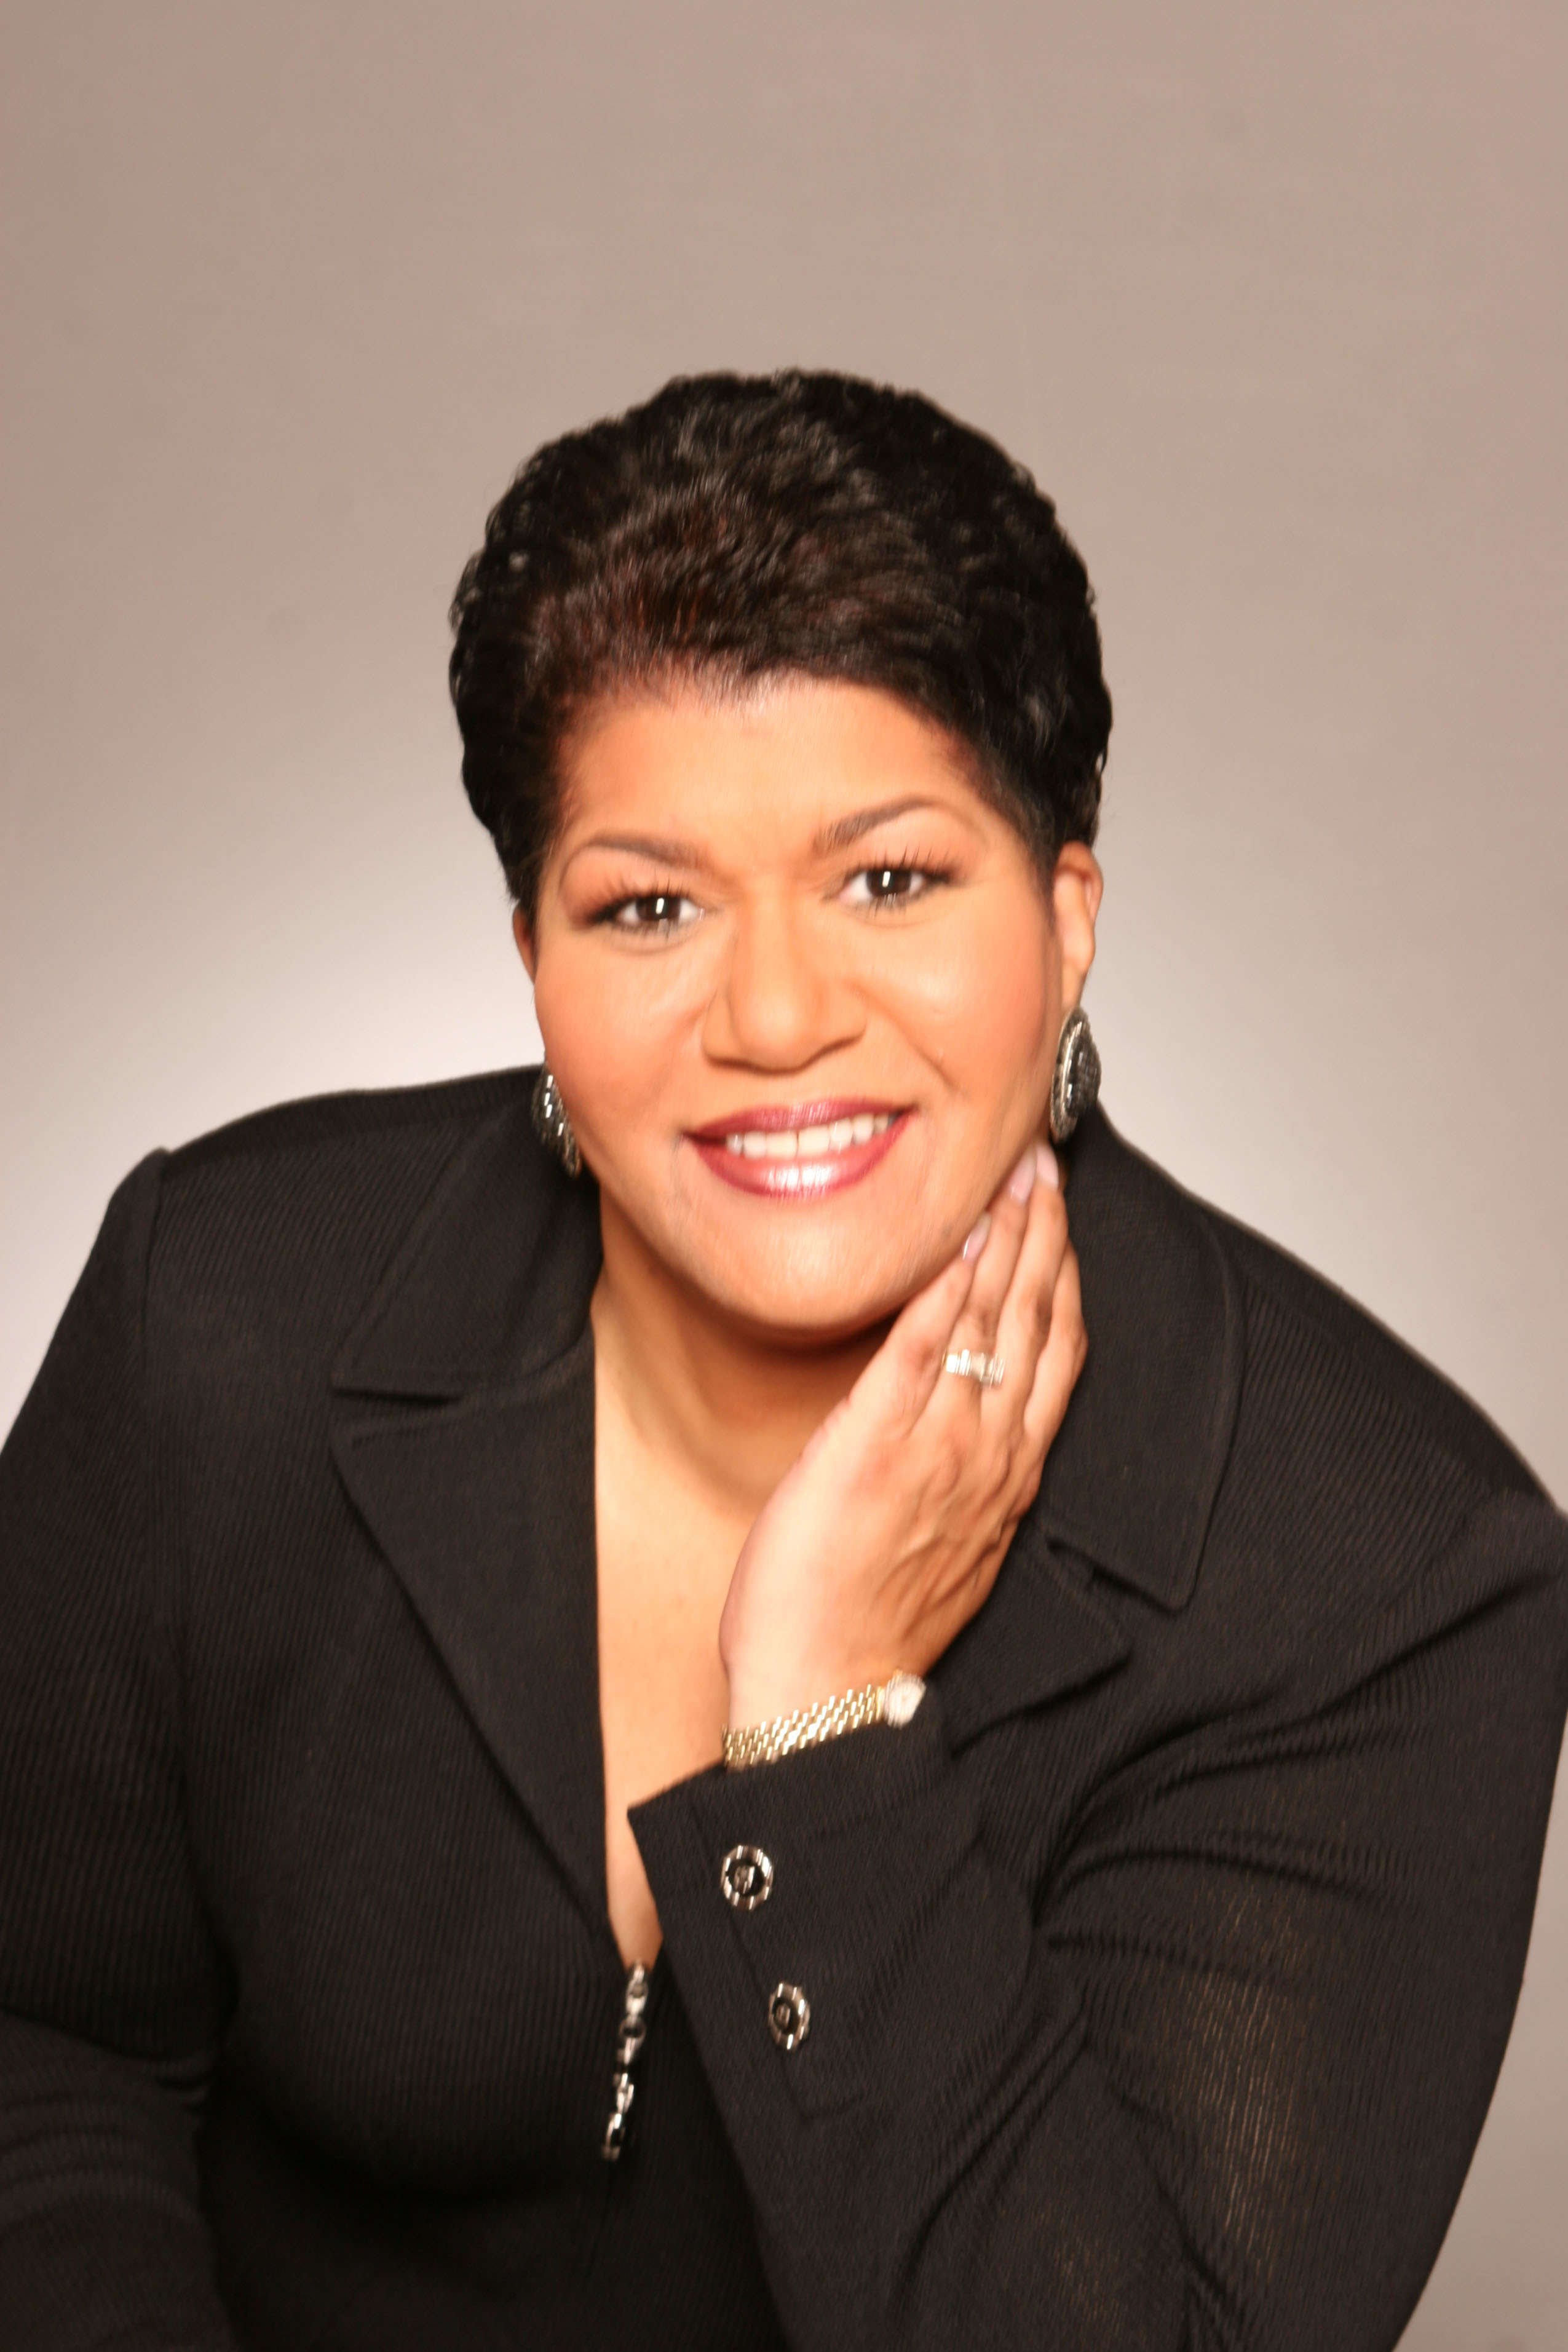 Dr. D'Ann JOhnson